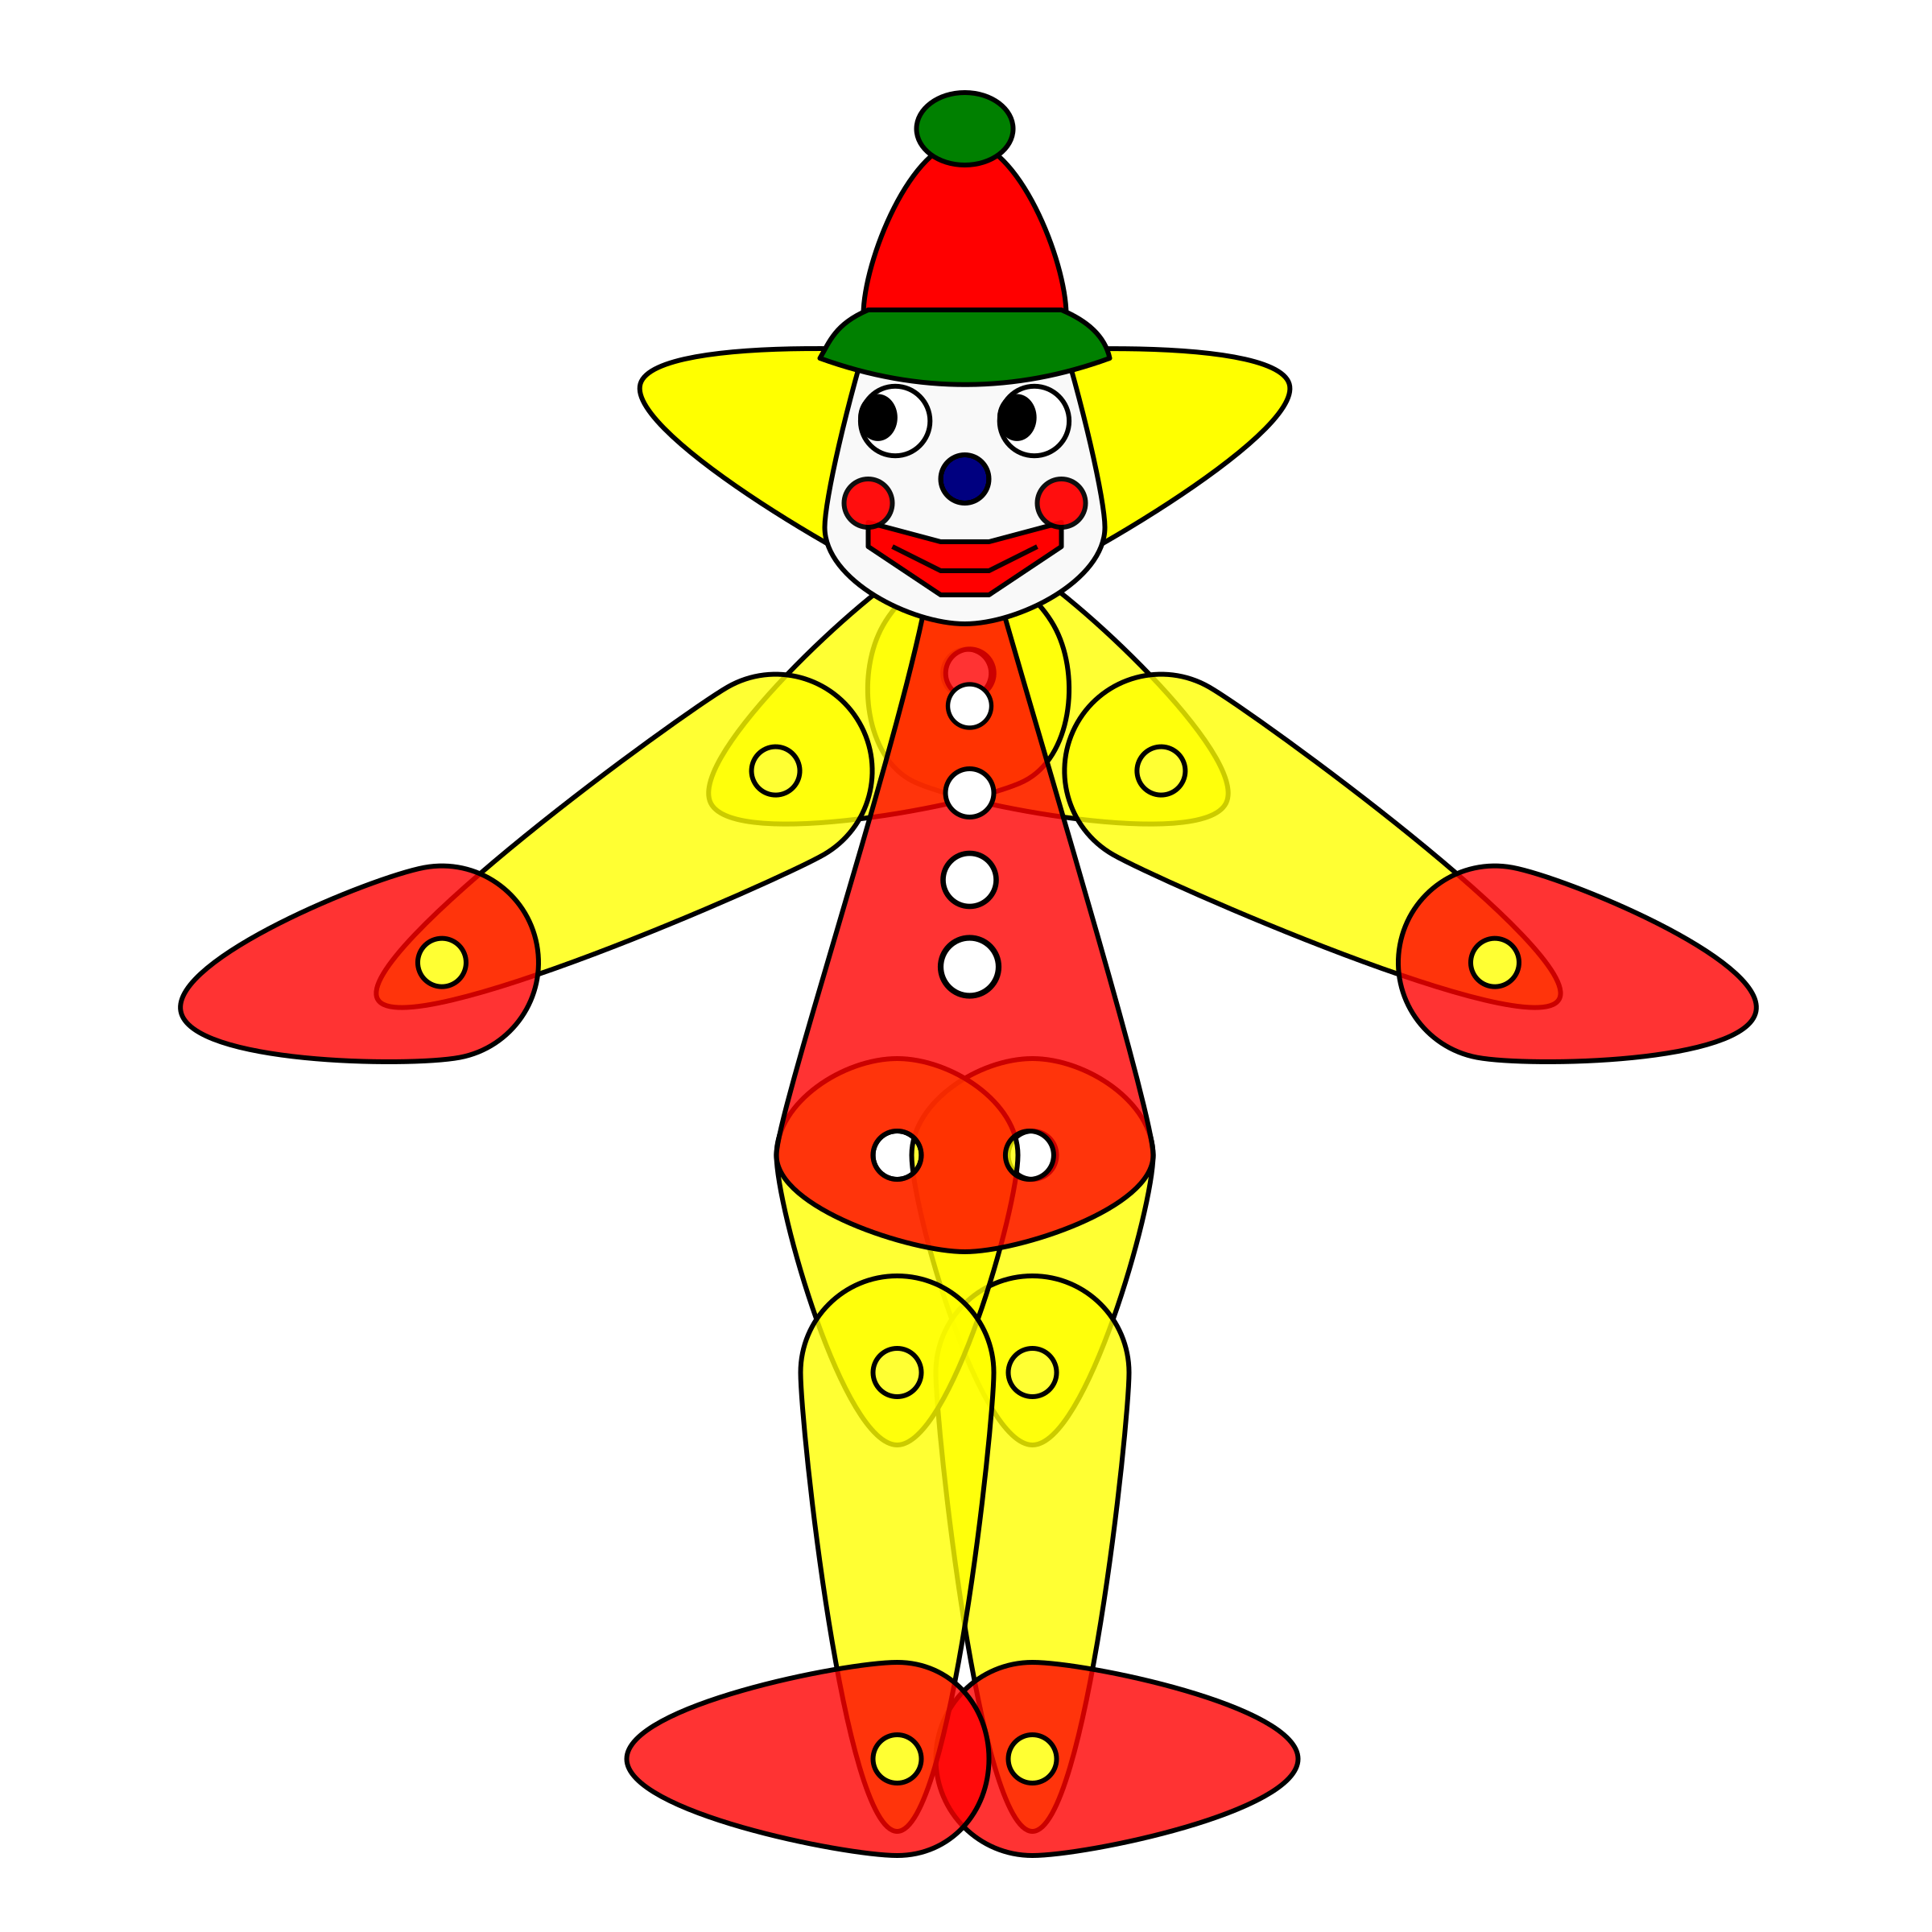 Clown standing png. Toy puppet animation icons